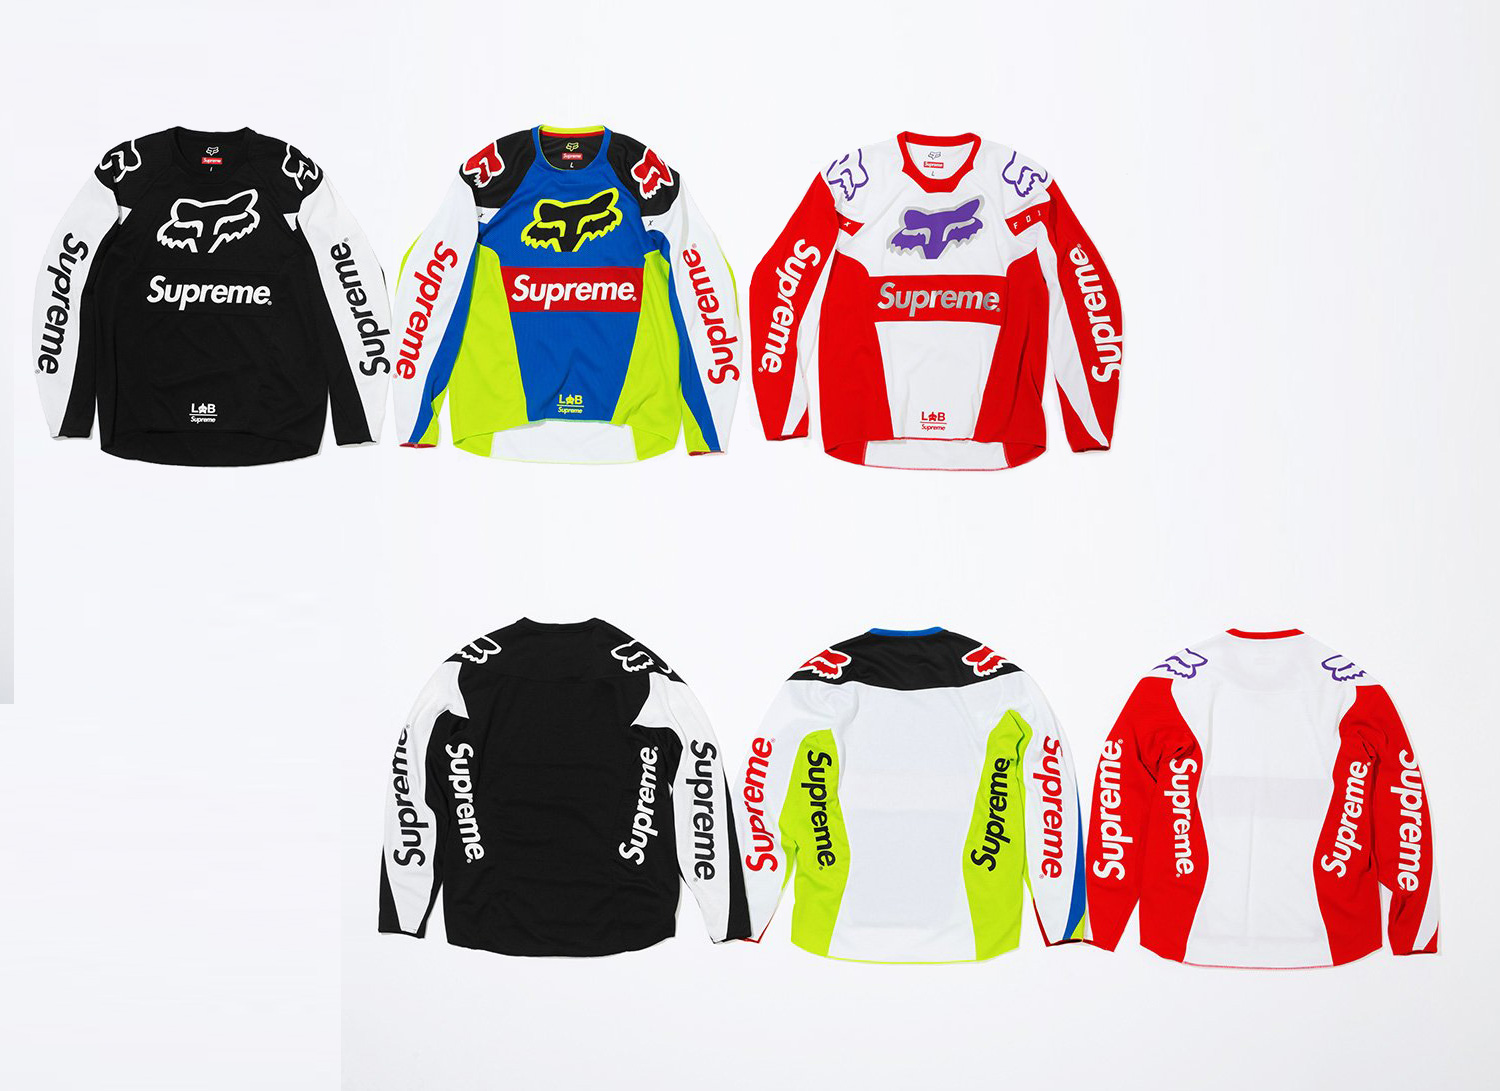 Supreme®/Fox Racing® Moto Jersey Top